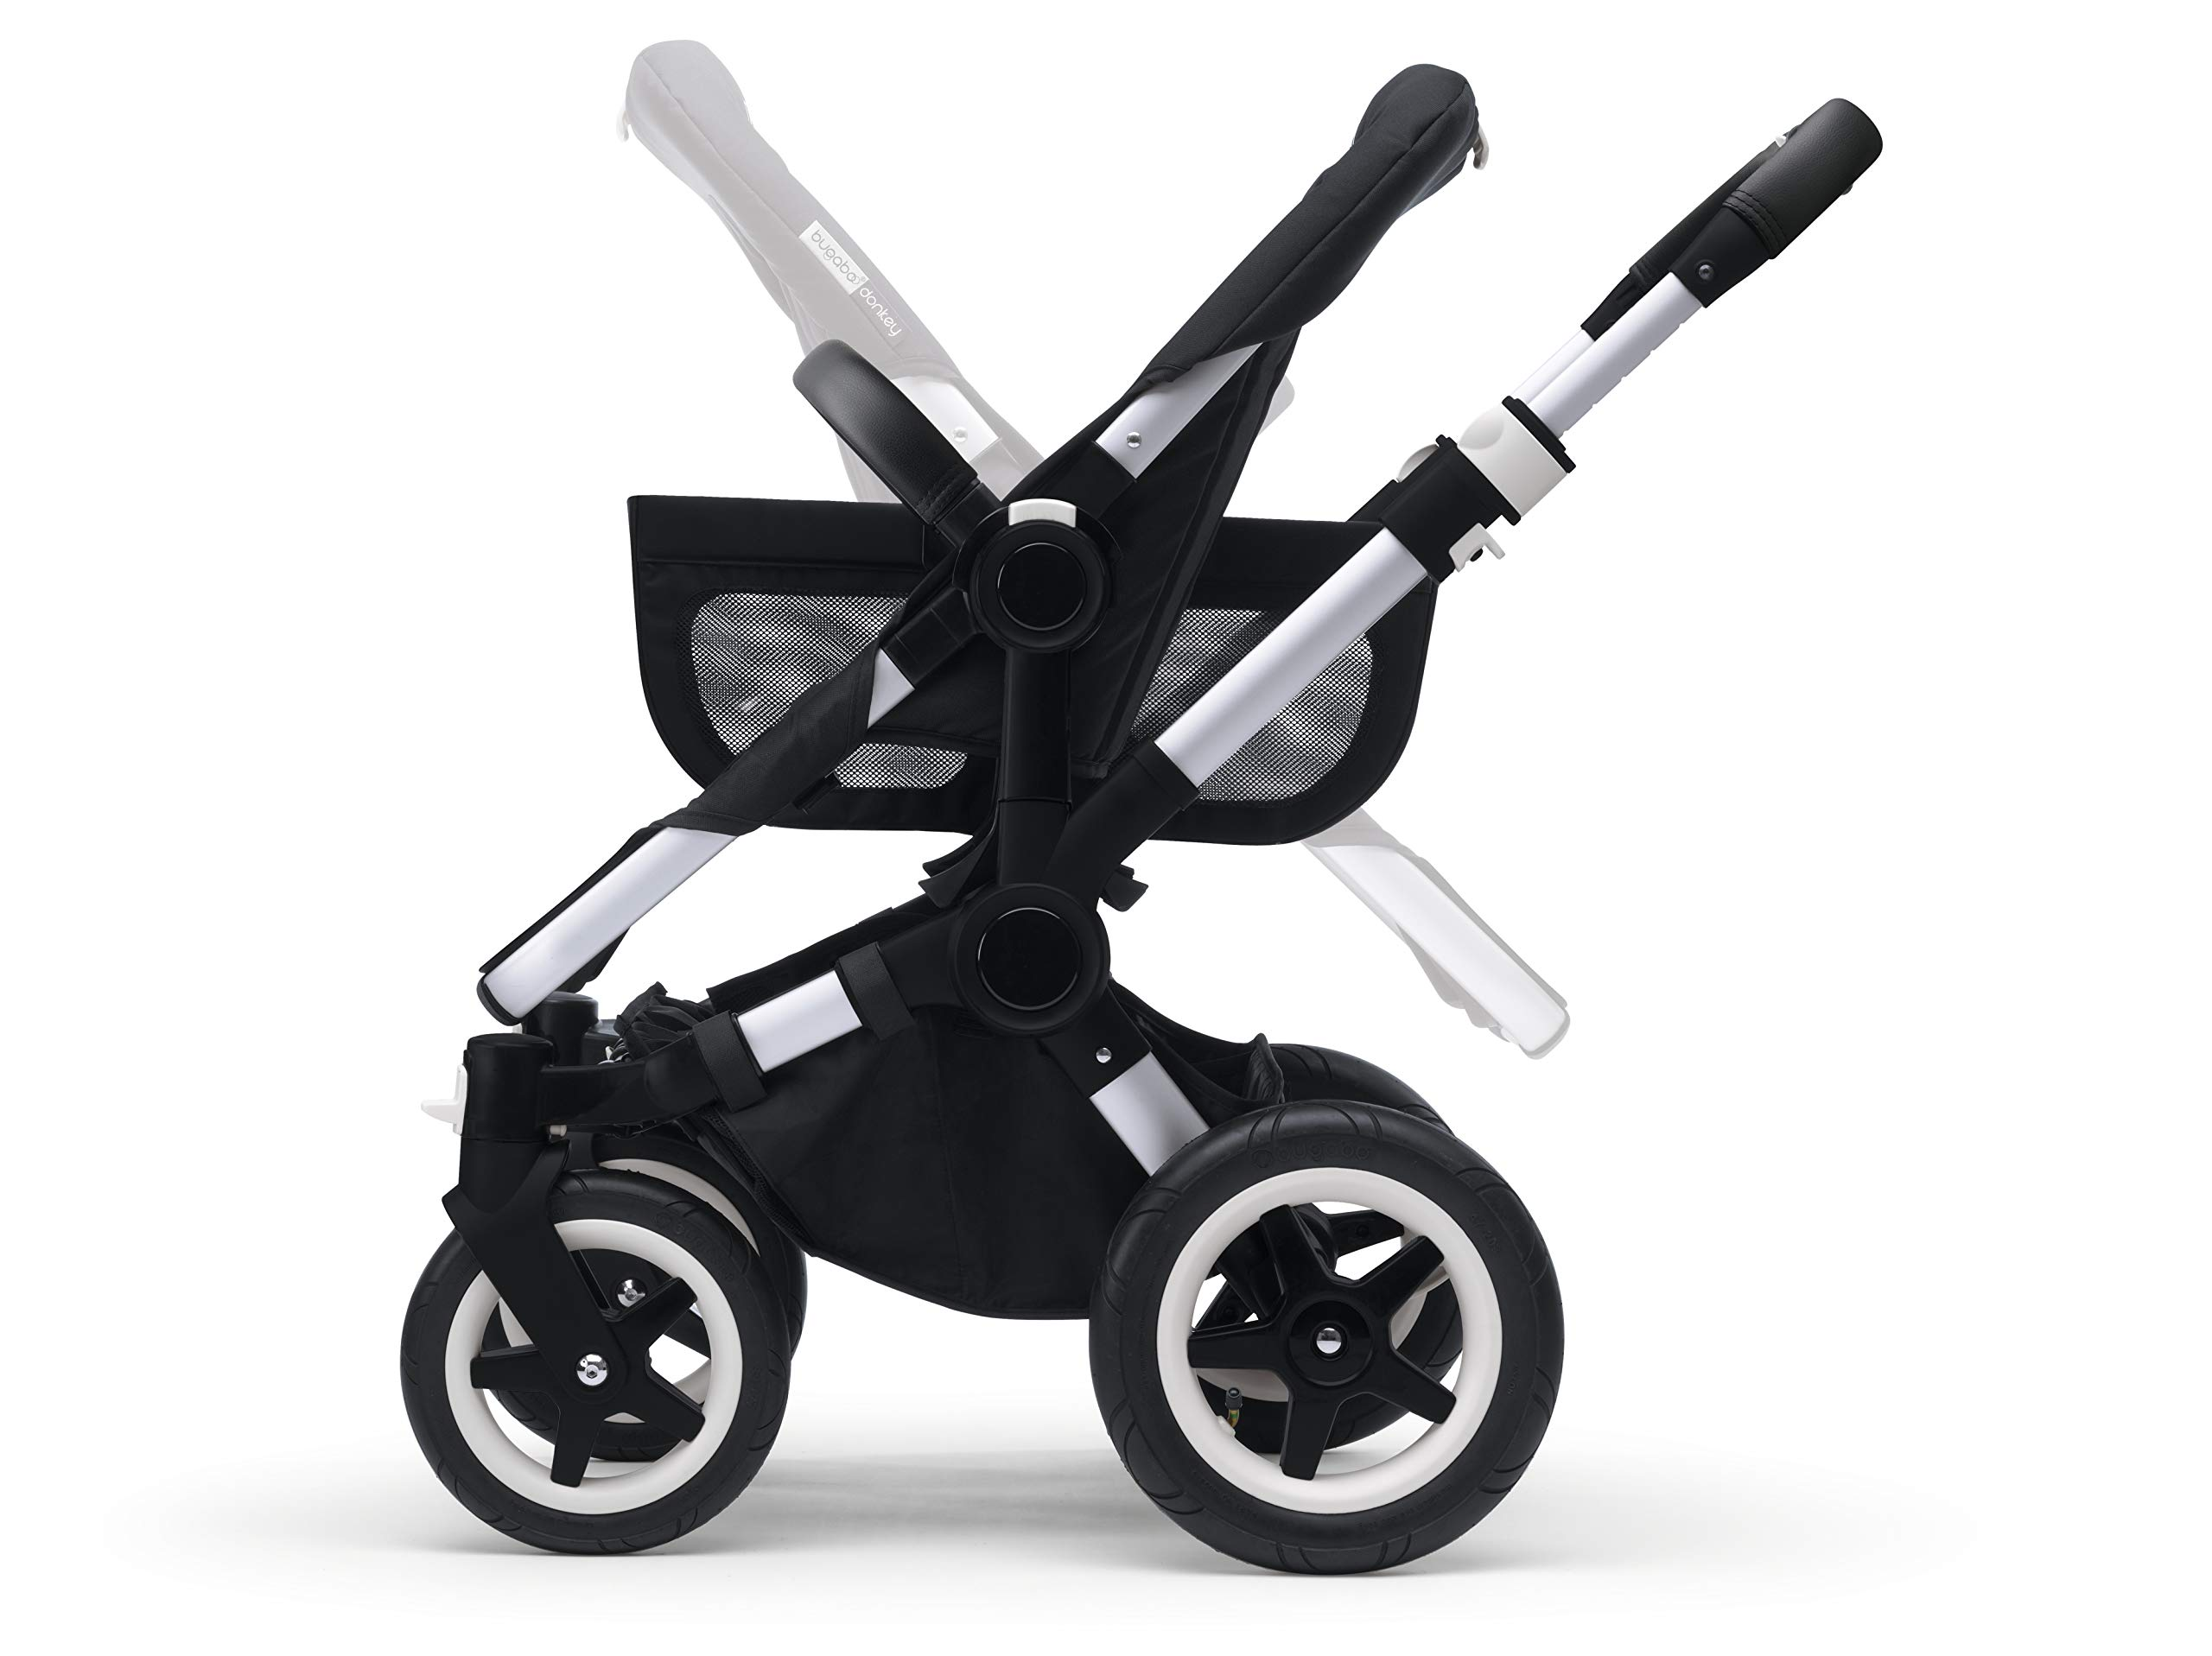 Bugaboo Donkey 2 Duo, 2 in 1 Pram and Double Pushchair for Baby and Toddler, Black/Soft Pink Bugaboo Perfect for two children of different ages Use as a double pushchair or convert it back into a single (mono) in a few simple clicks You only need one hand to push, steer and turn 4